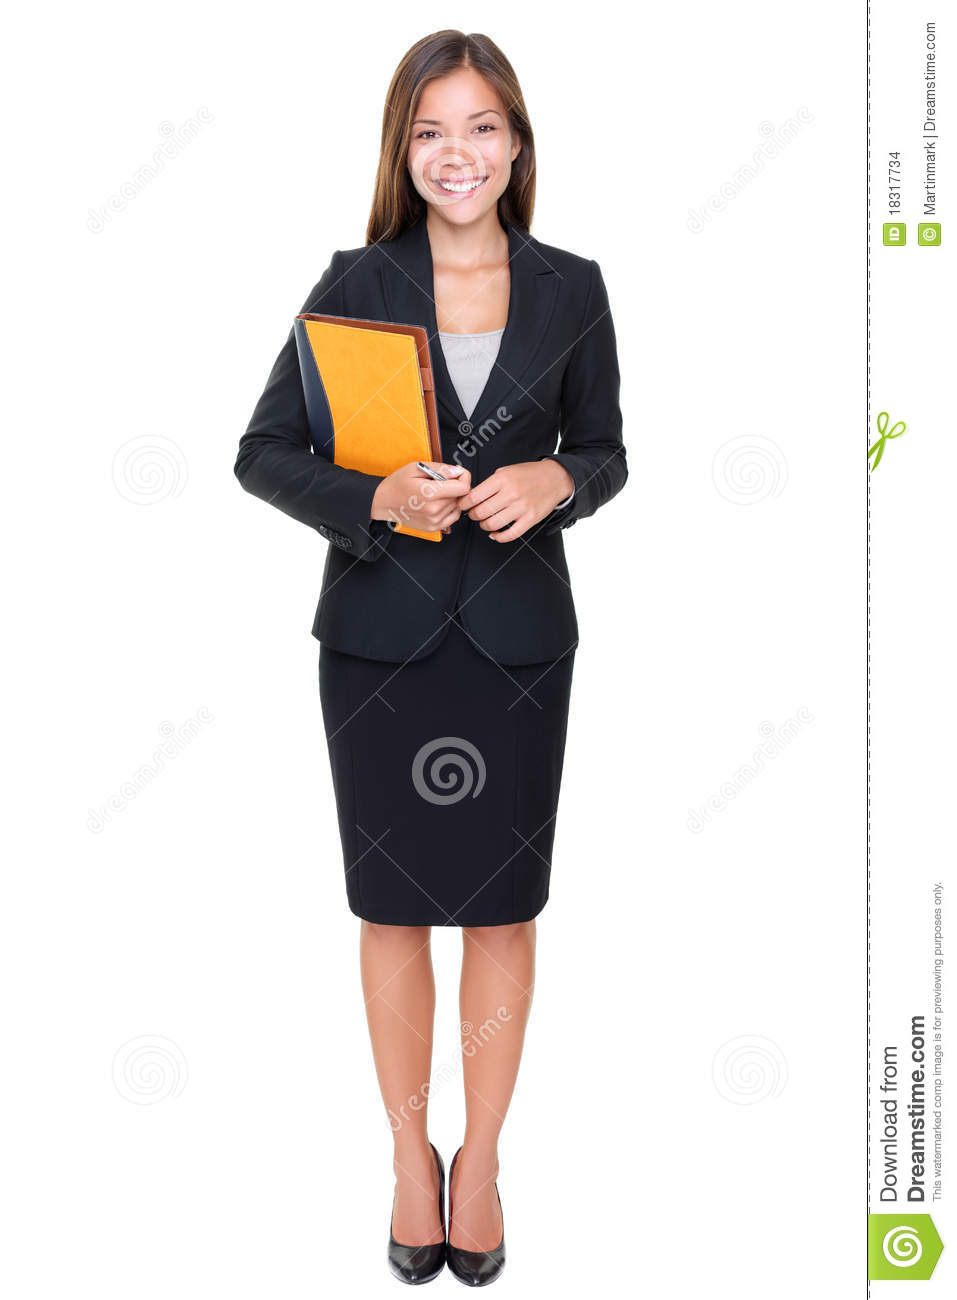 Business Woman Real Estate Agent Standing Stock Photo Image Of - Real estate agent business plan template